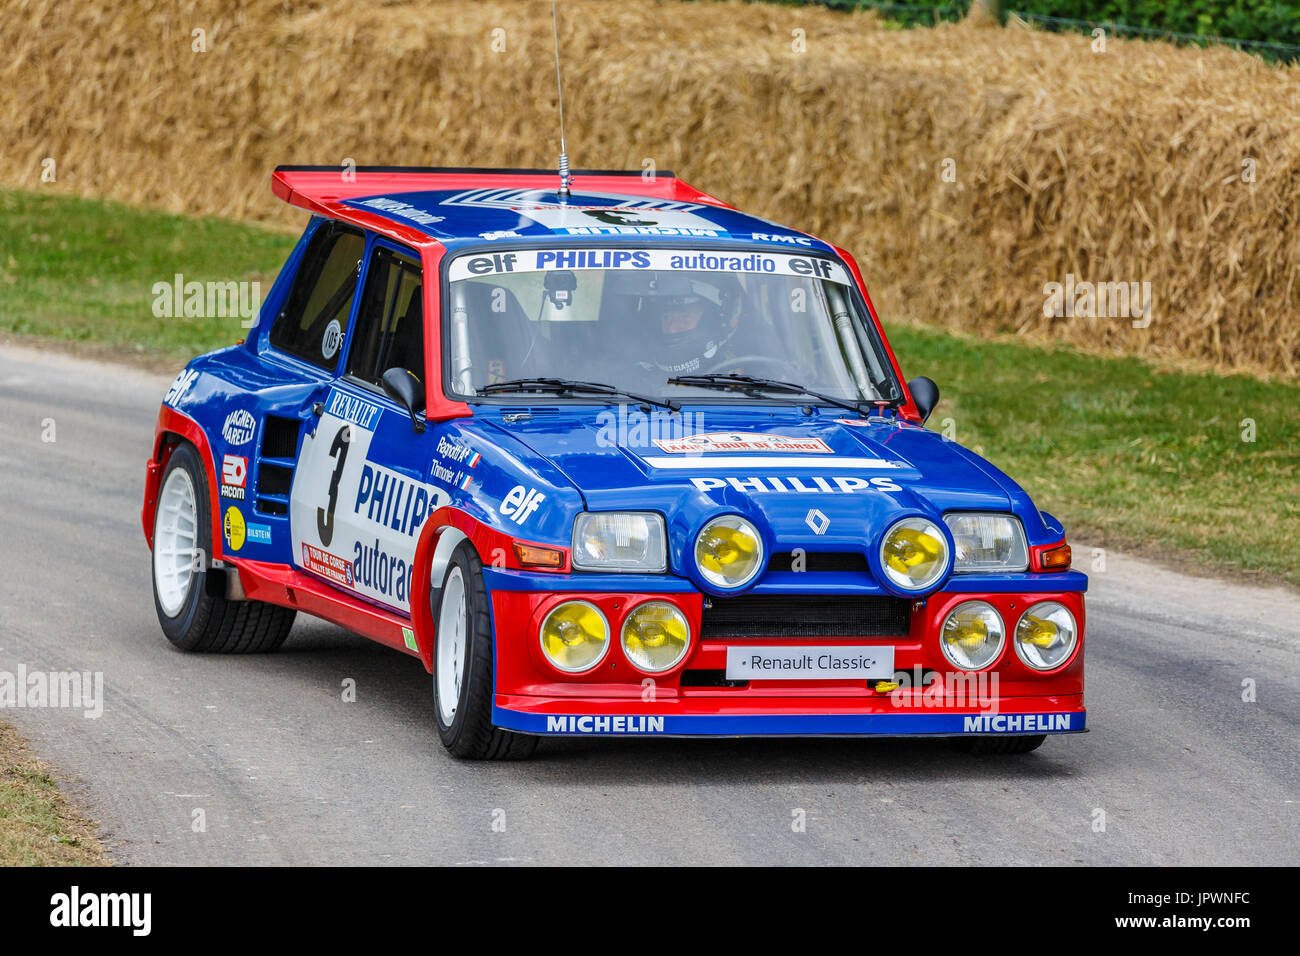 Renault 5 High Resolution Stock Photography And Images Alamy